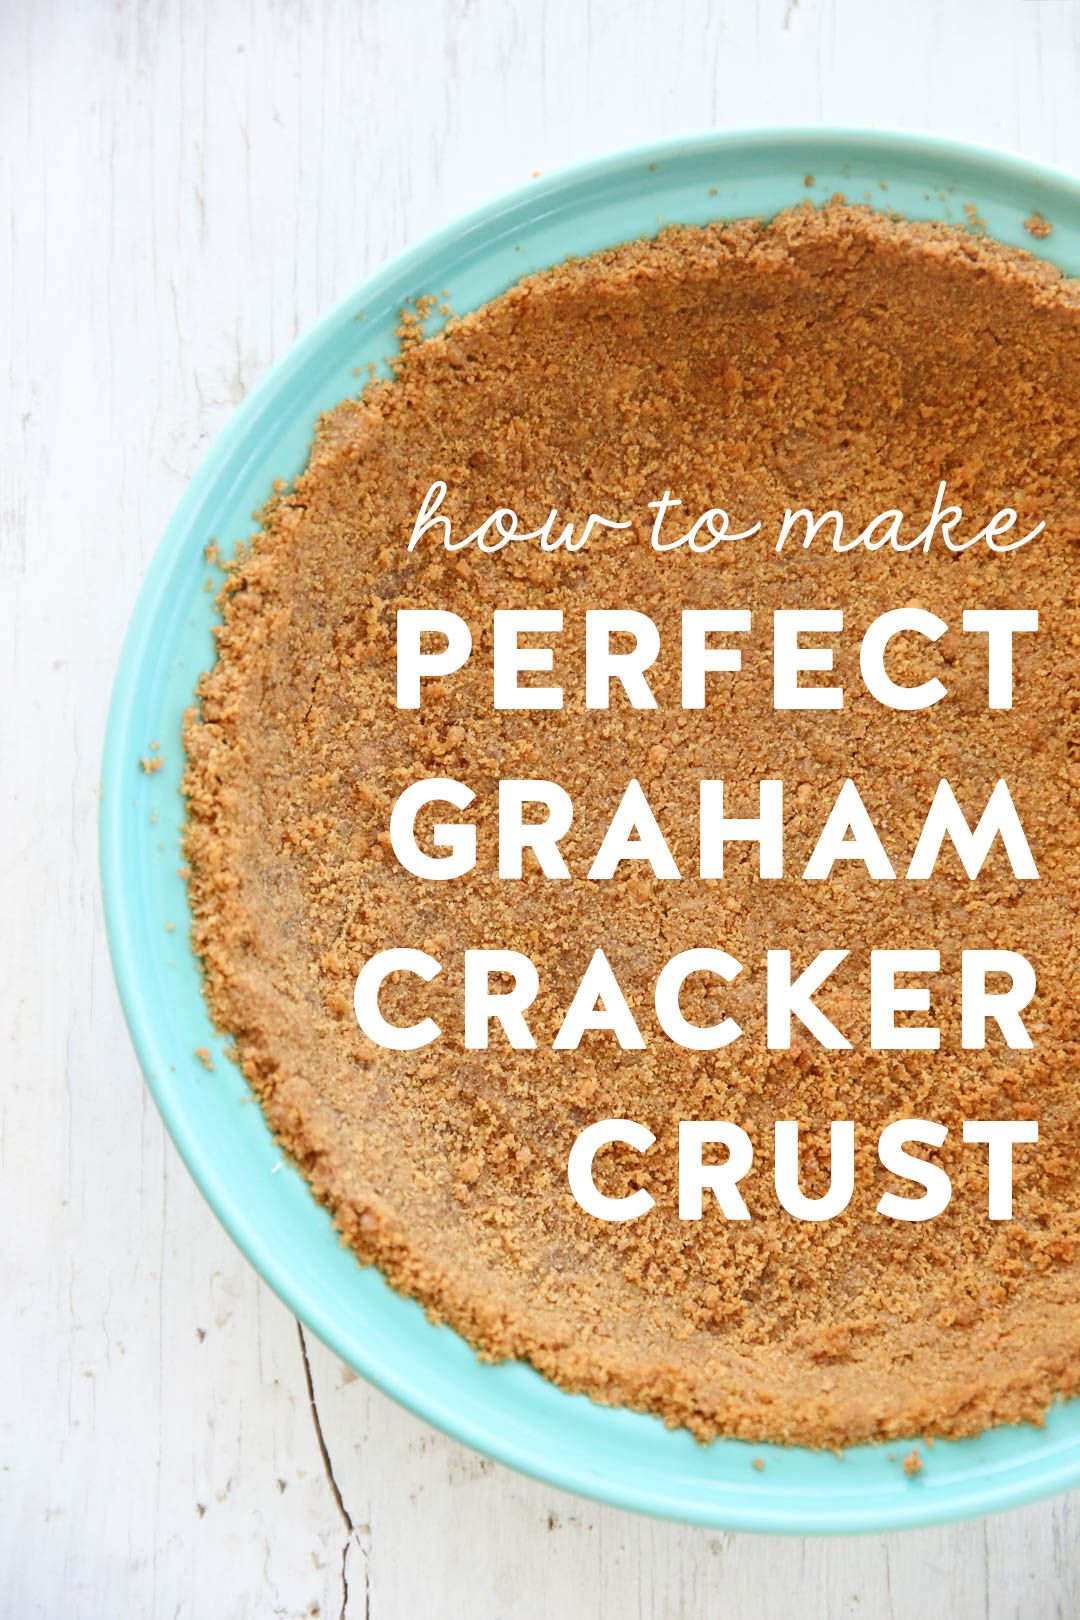 Graham Cracker Pie Crust | Our Best Bites